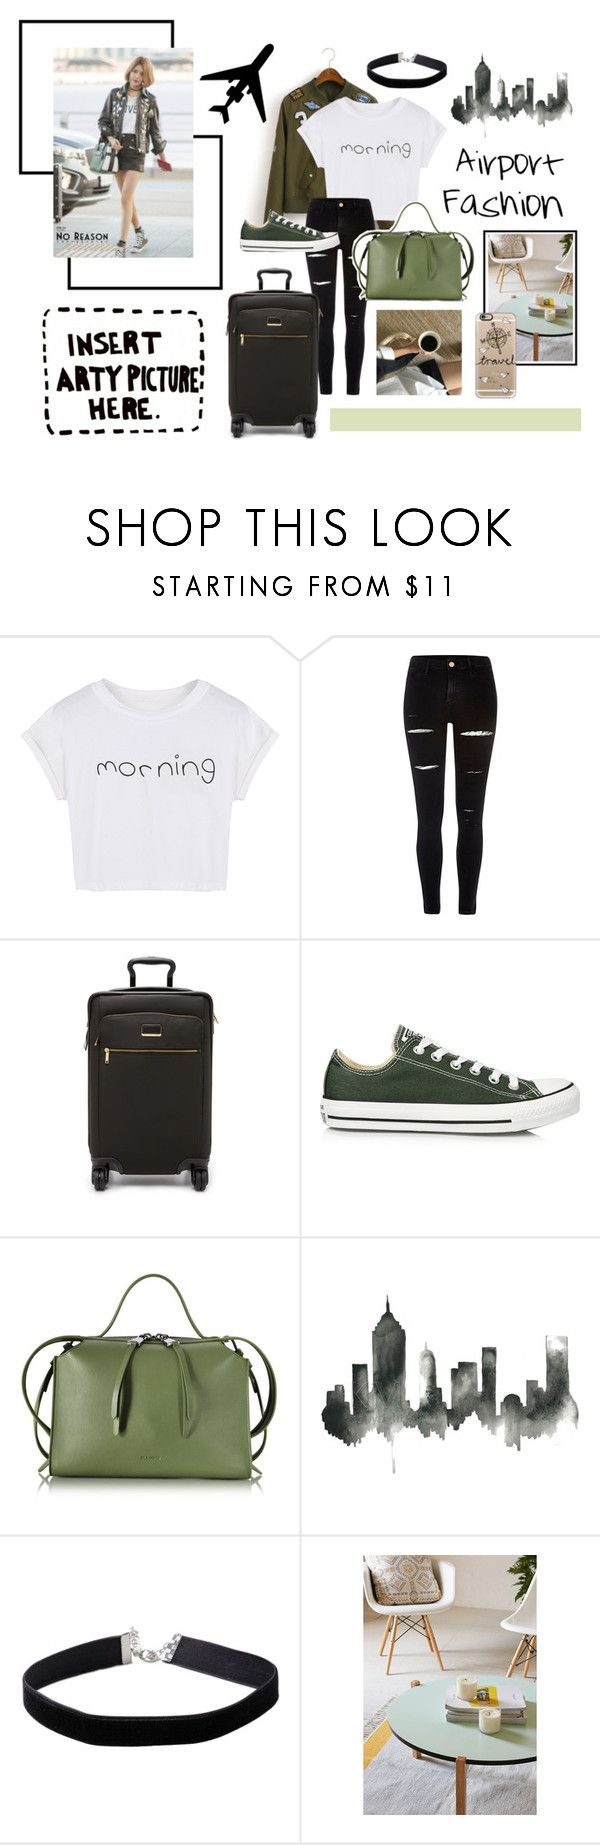 """""""Airport Fashion #8"""" by fashionologysz ❤ liked on Polyvore featuring WithChic, River Island, Tumi, Converse, Jil Sander, WALL, Miss Selfridge, Urban Outfitters, Casetify and Again"""